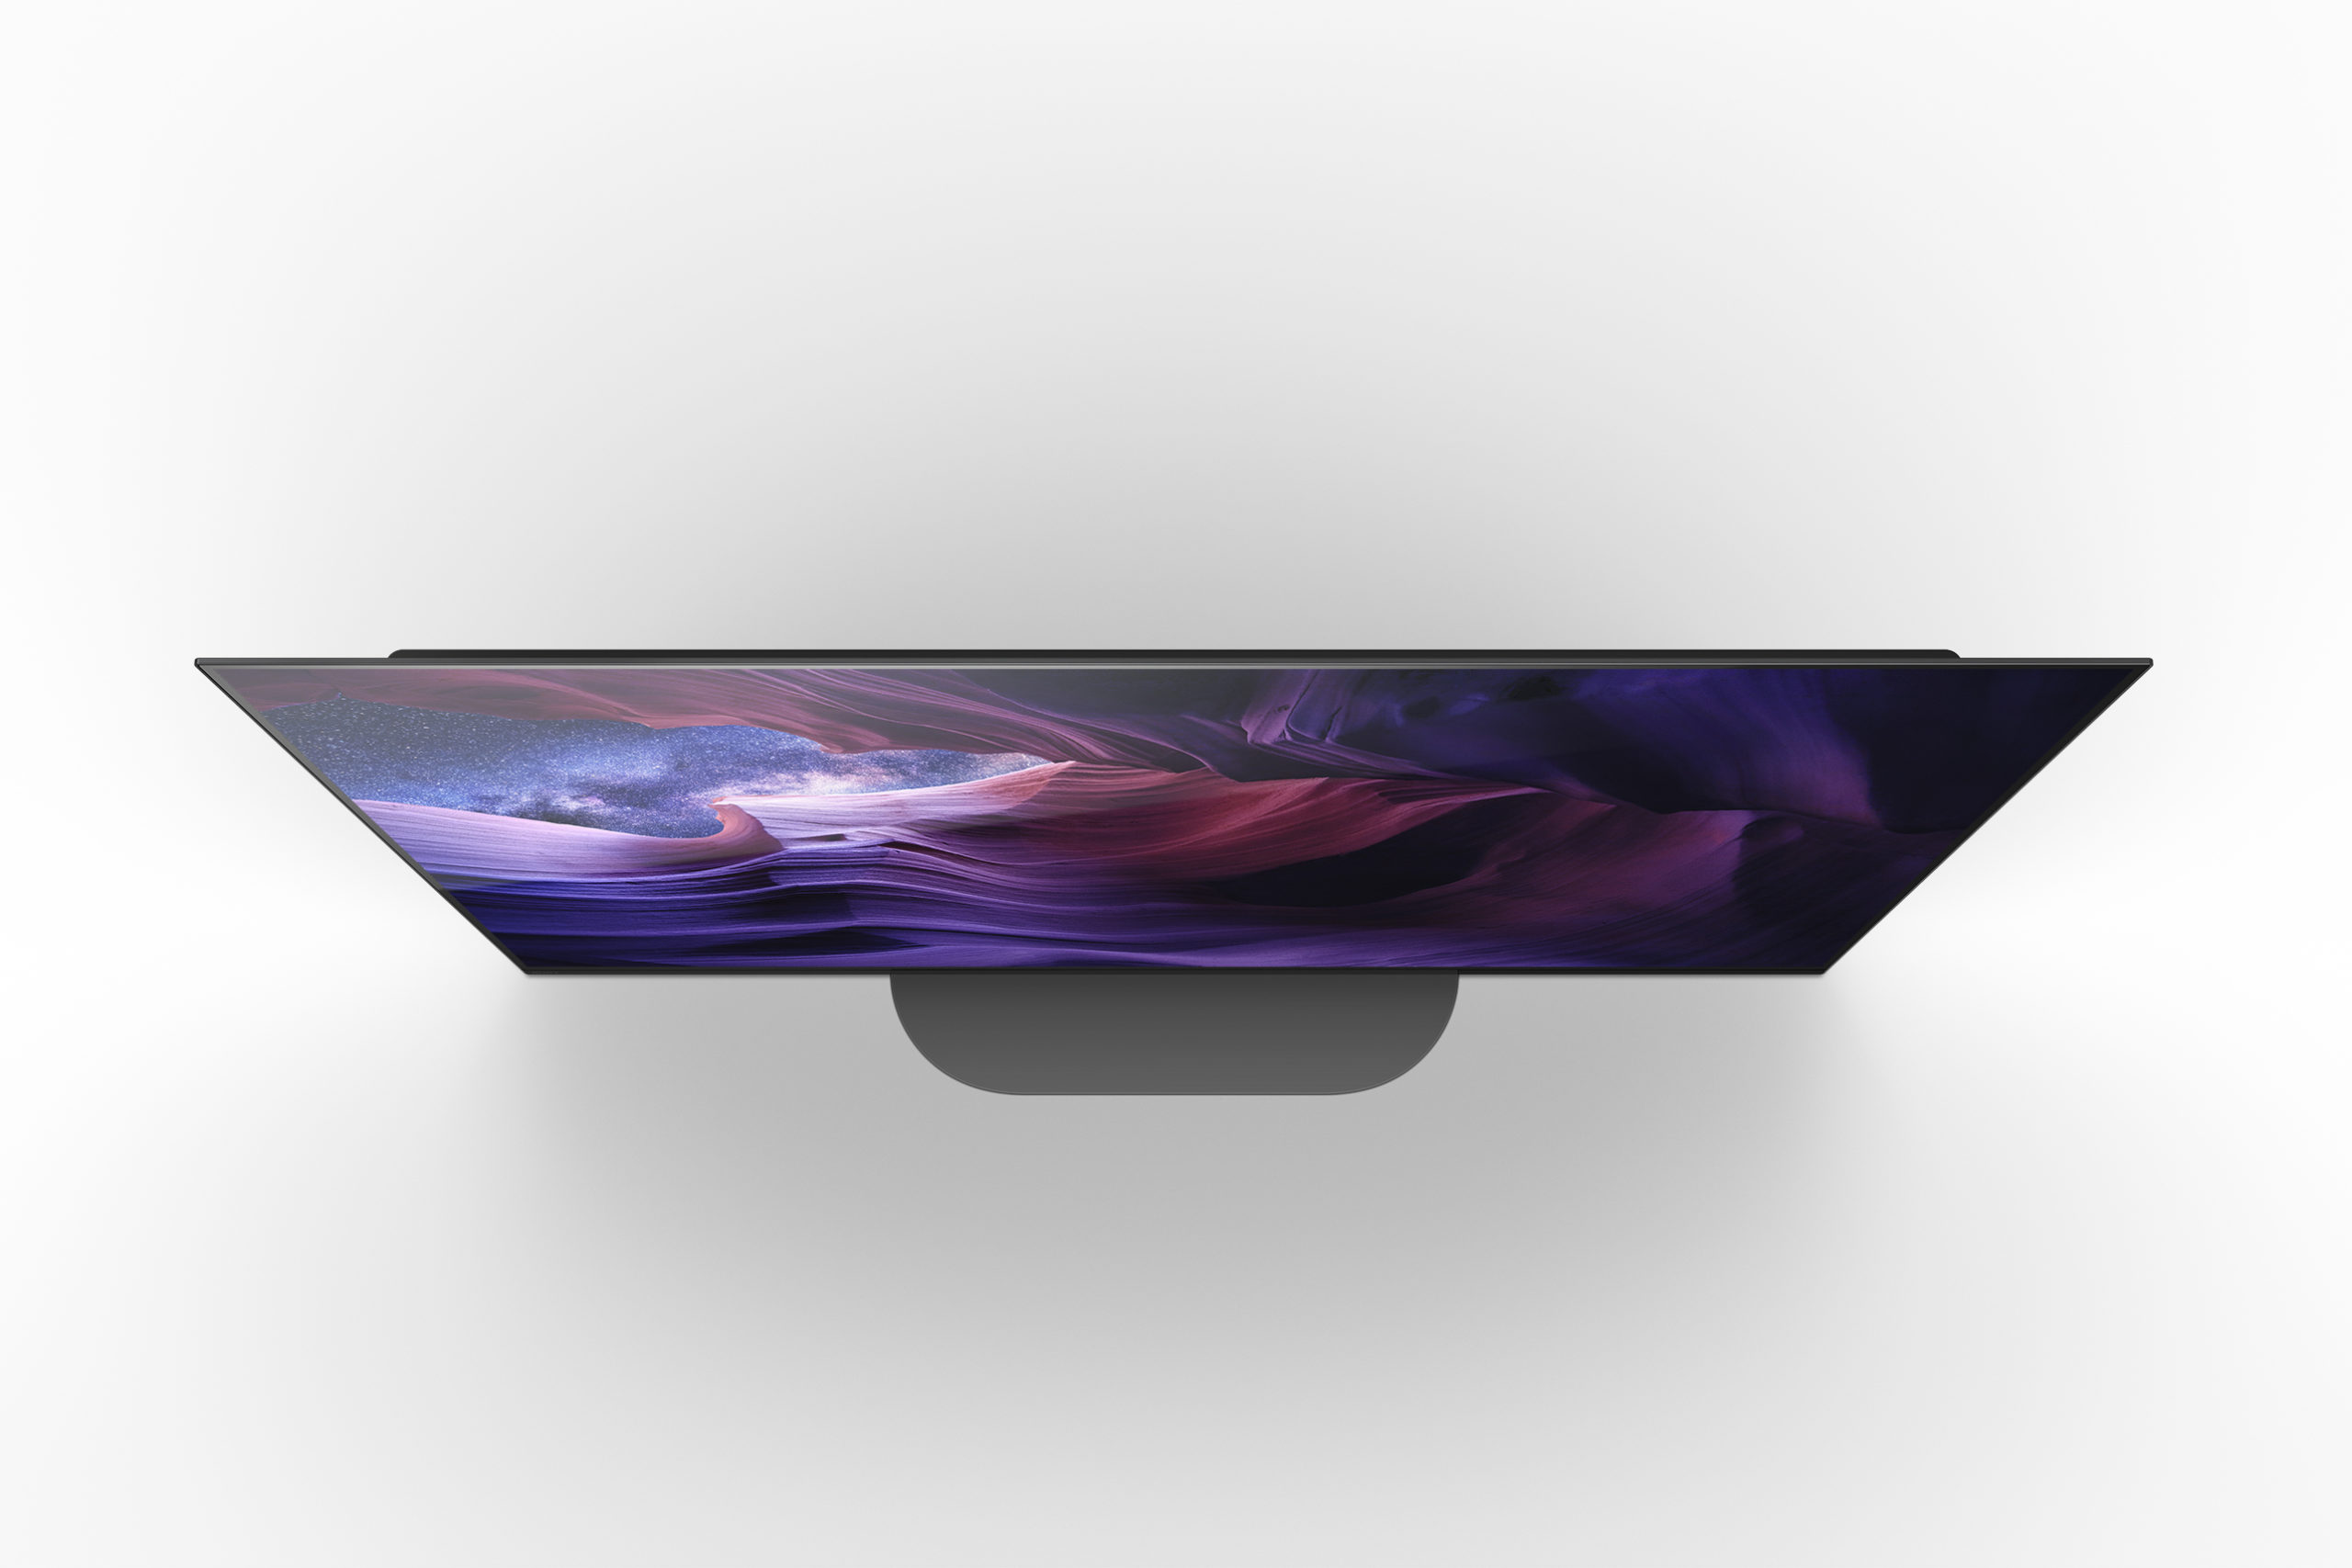 Sony A9 oled tv